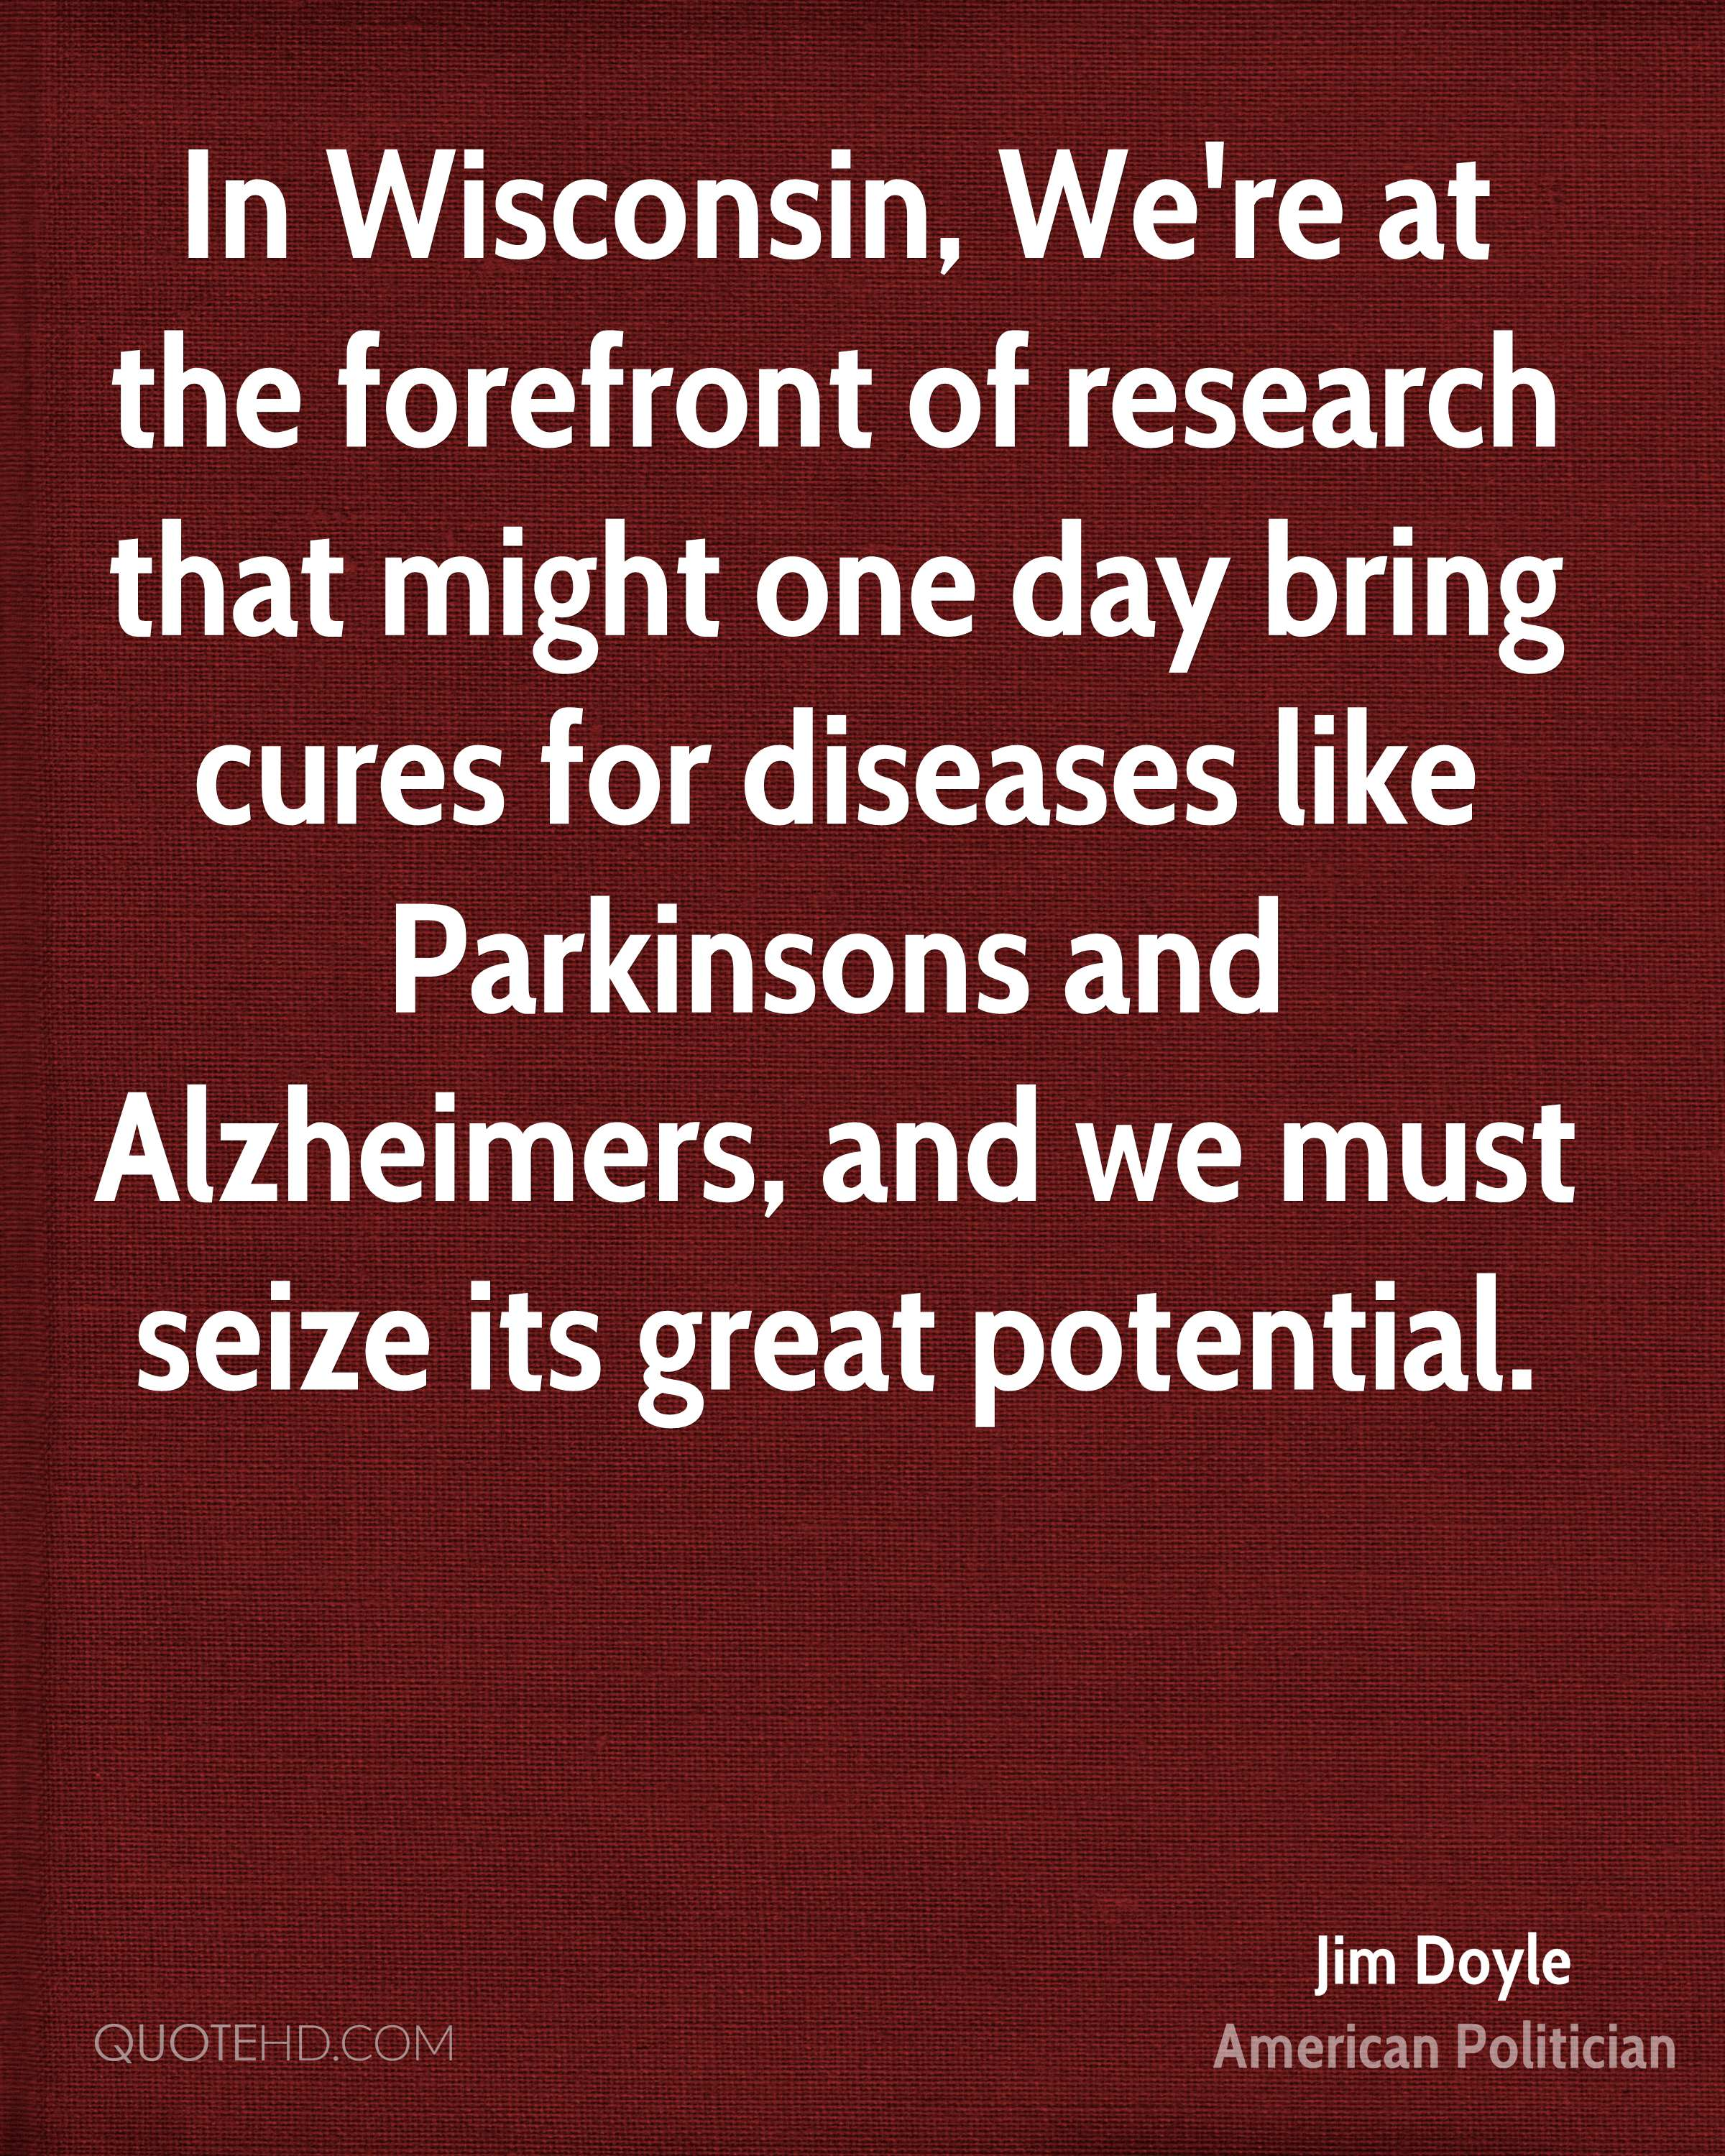 In Wisconsin, We're at the forefront of research that might one day bring cures for diseases like Parkinsons and Alzheimers, and we must seize its great potential.